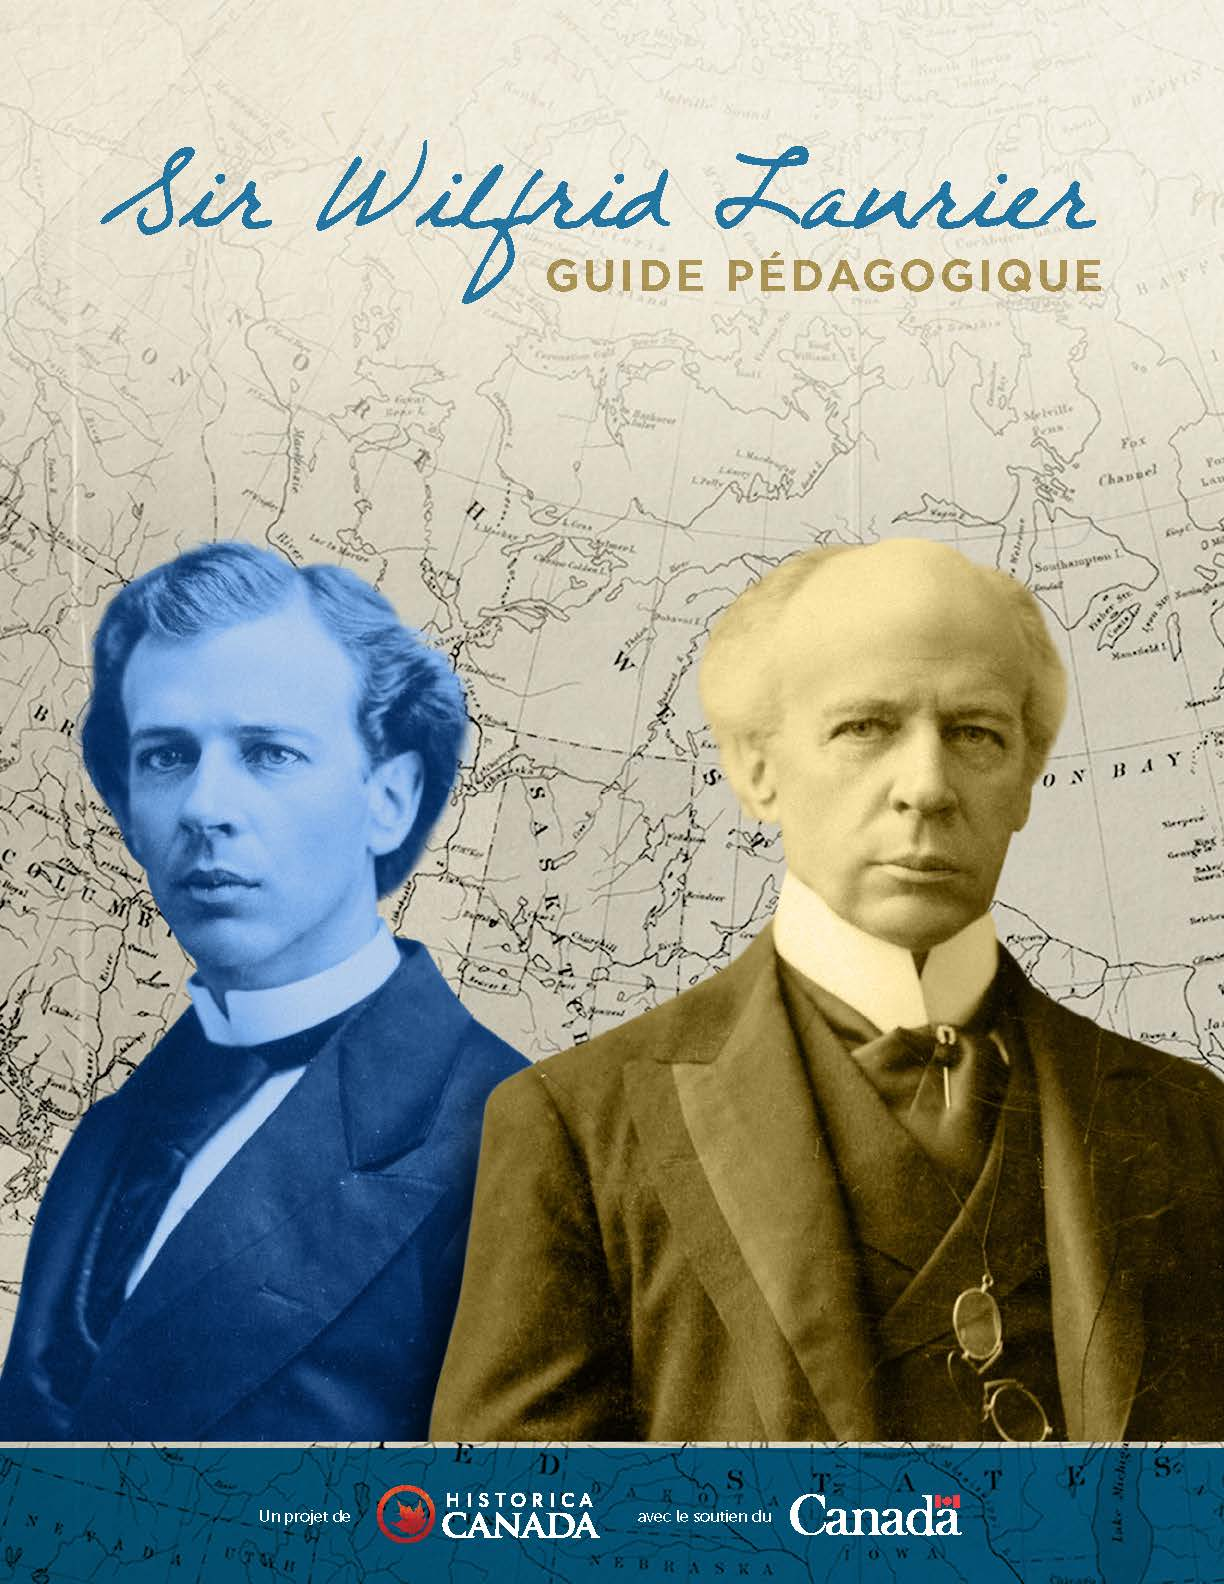 Sir Wilfrid Laurier guide pédagogique